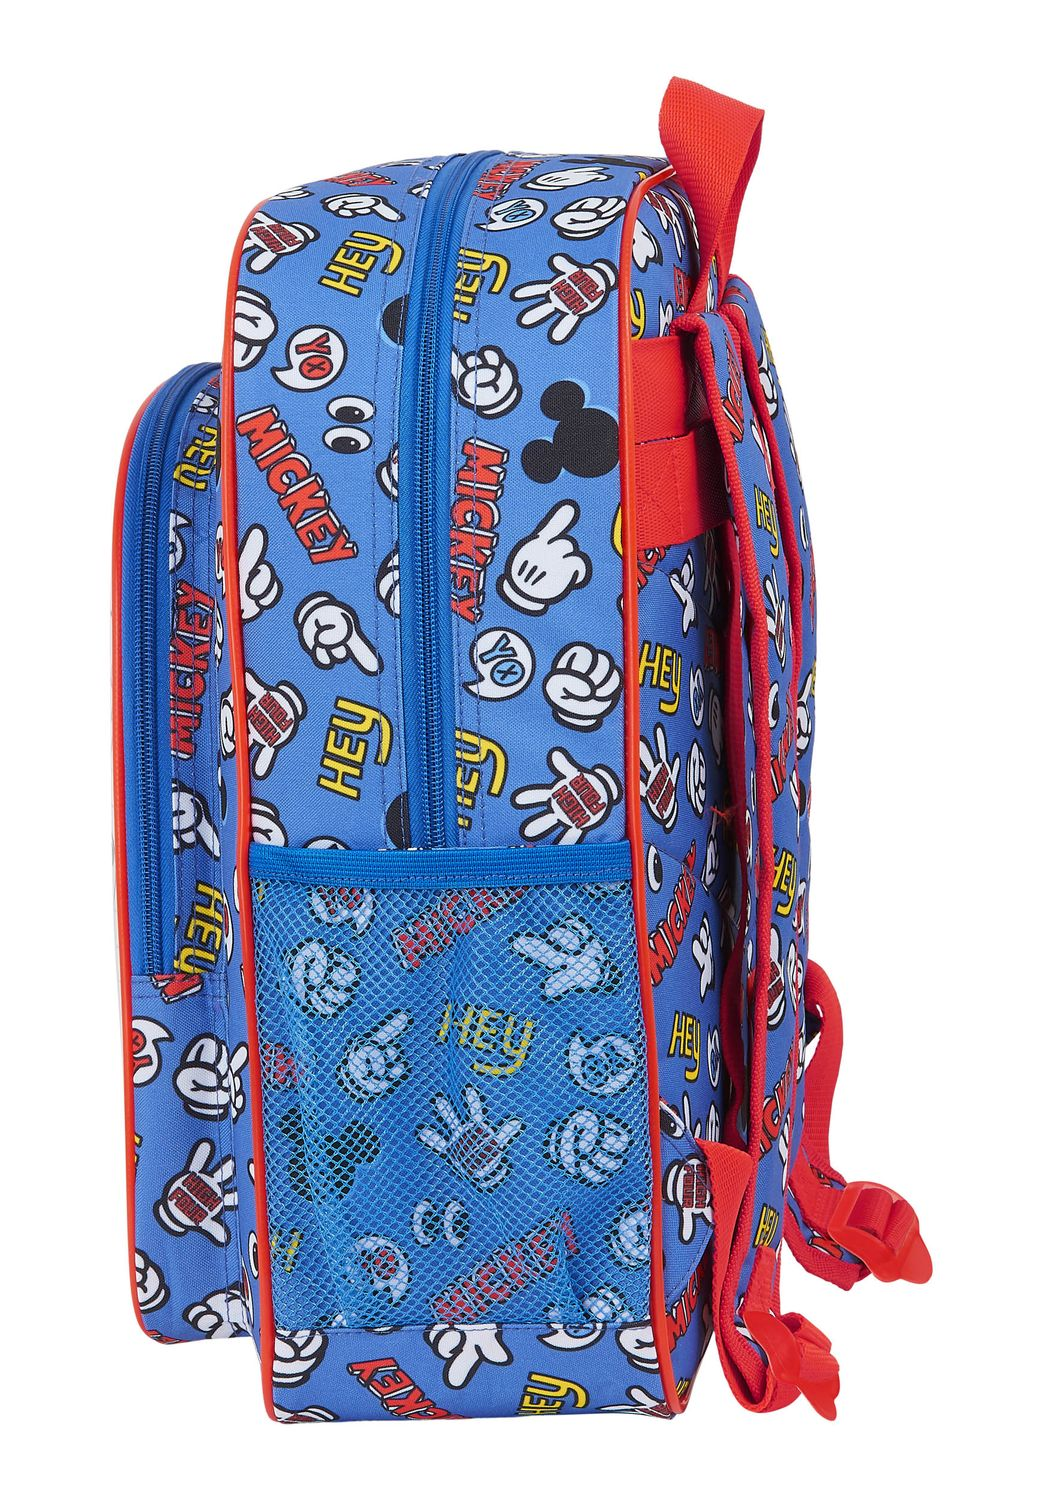 Disney MICKEY MOUSE THINGS Junior Rucksack 38 cm – image 4